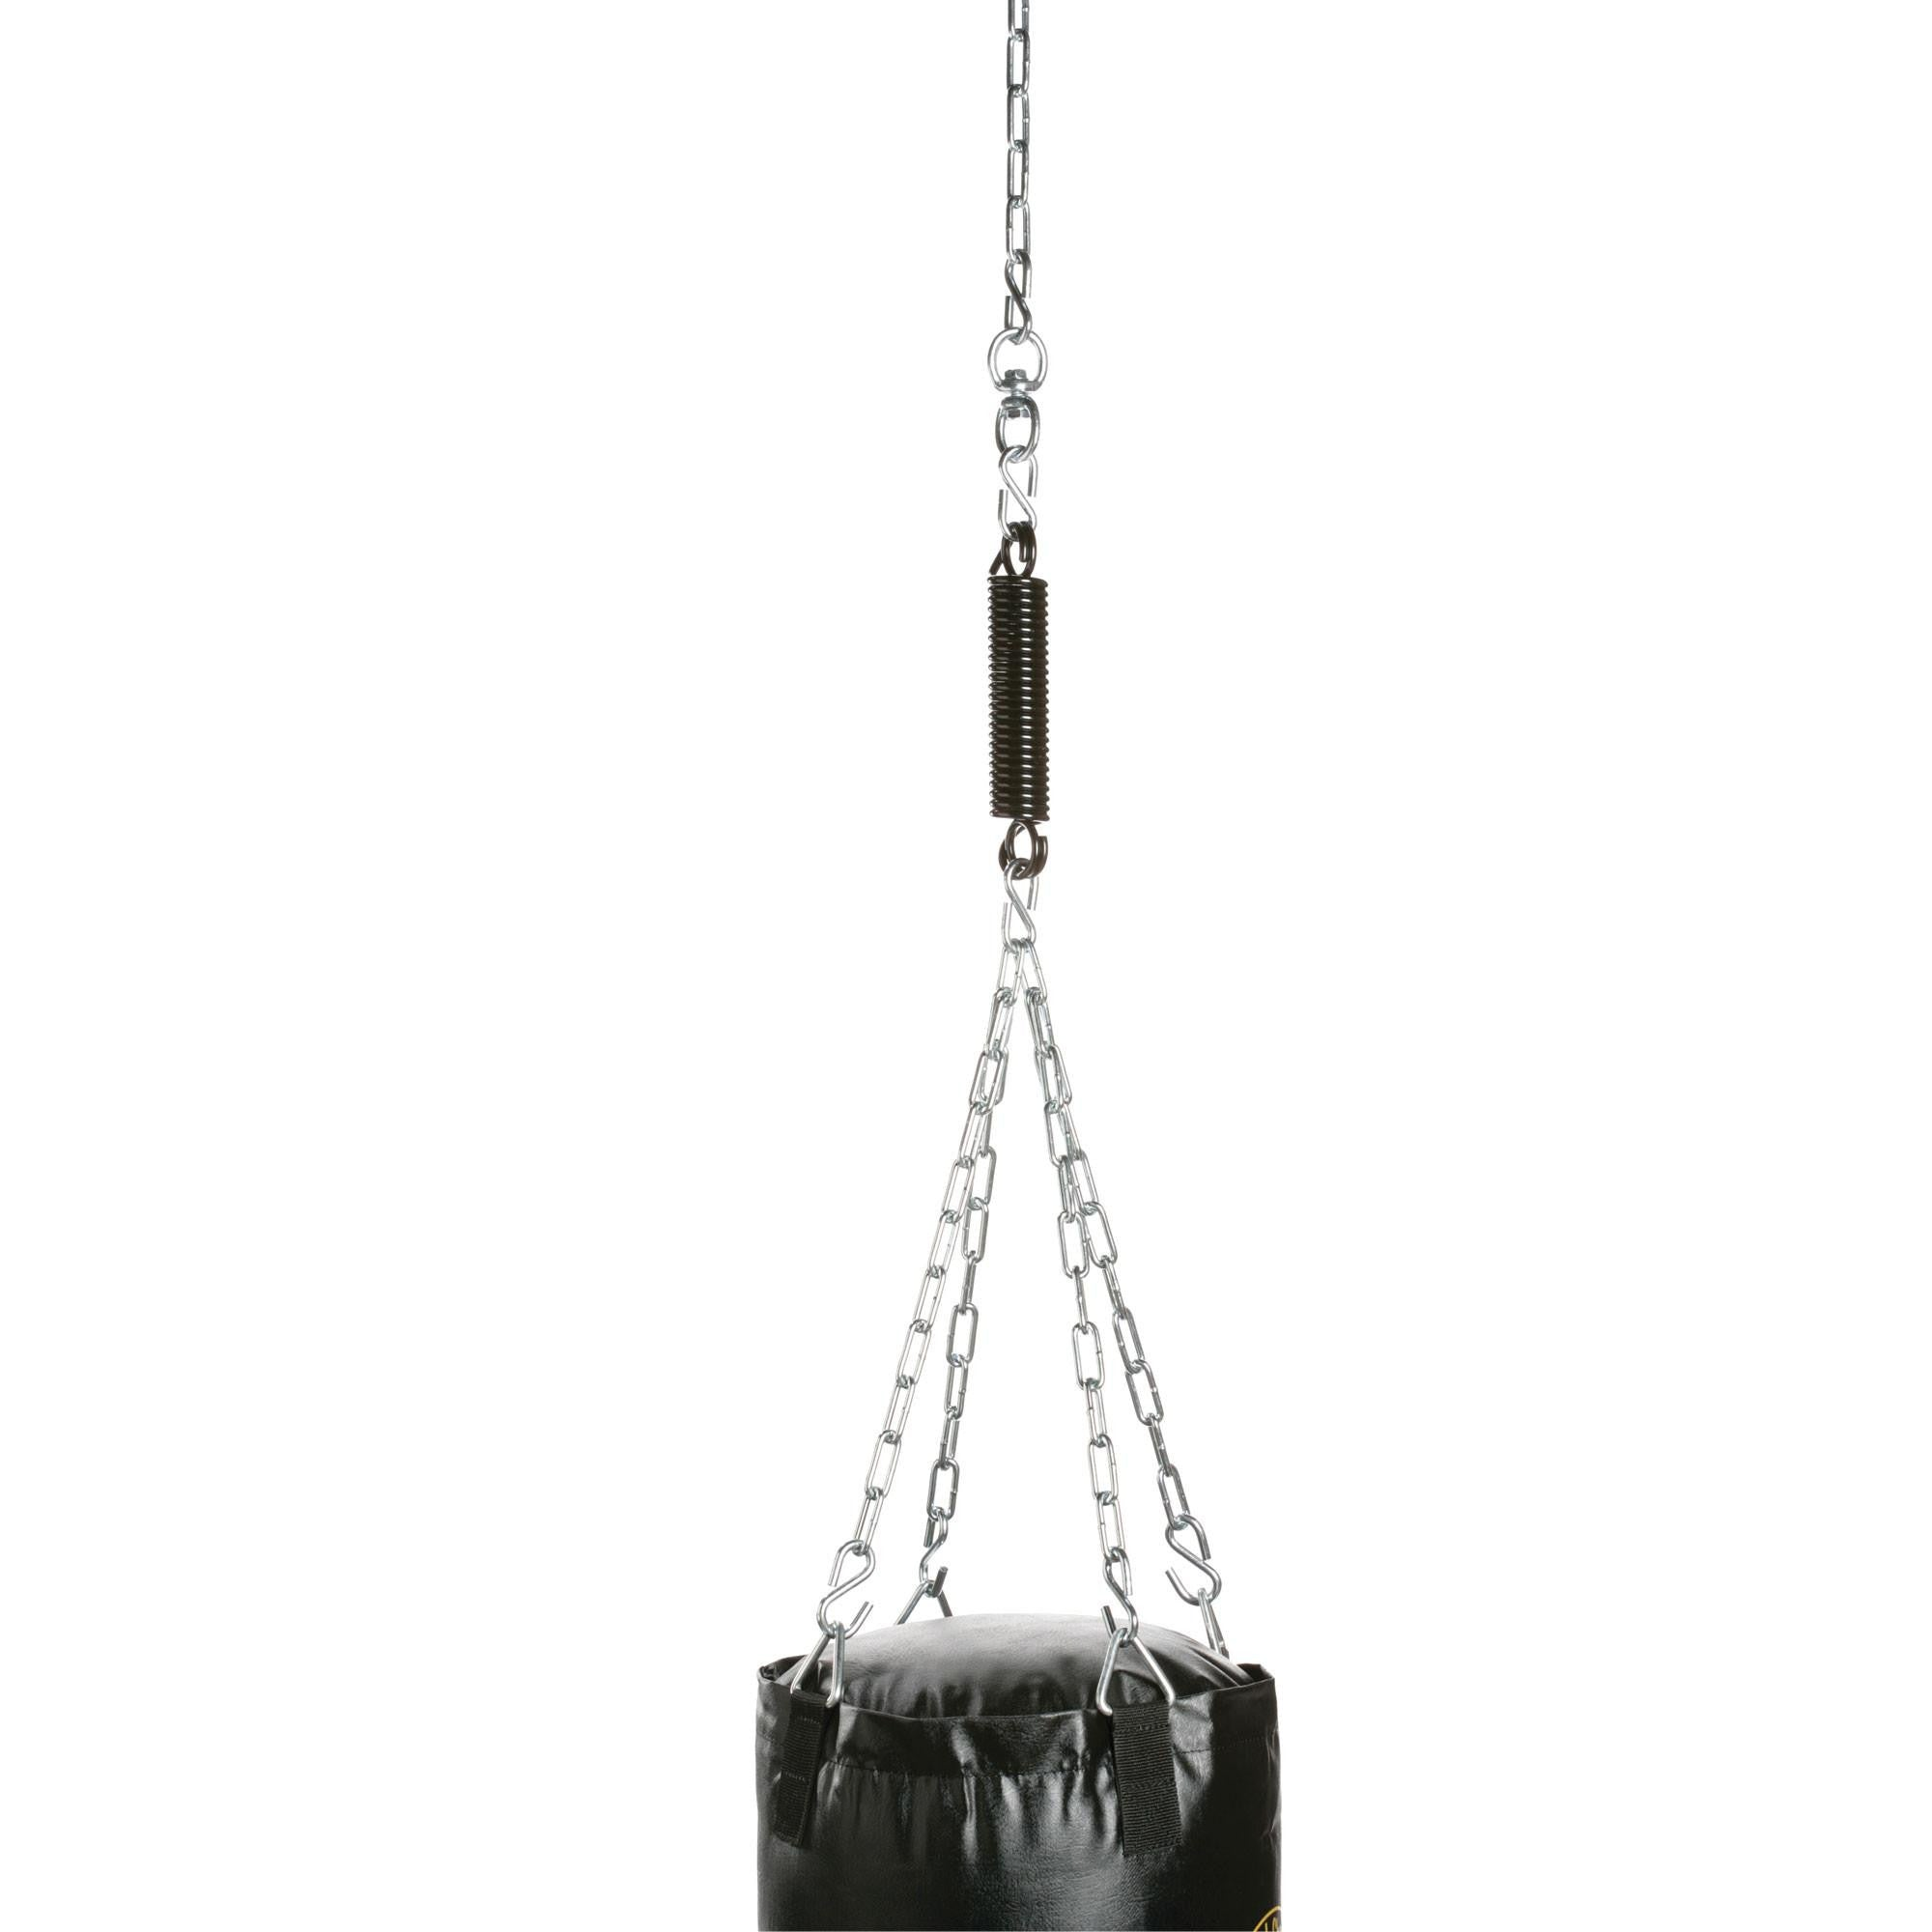 Everlast Heavy Duty Heavy Bag Chain & Swivel by Everlast Canada